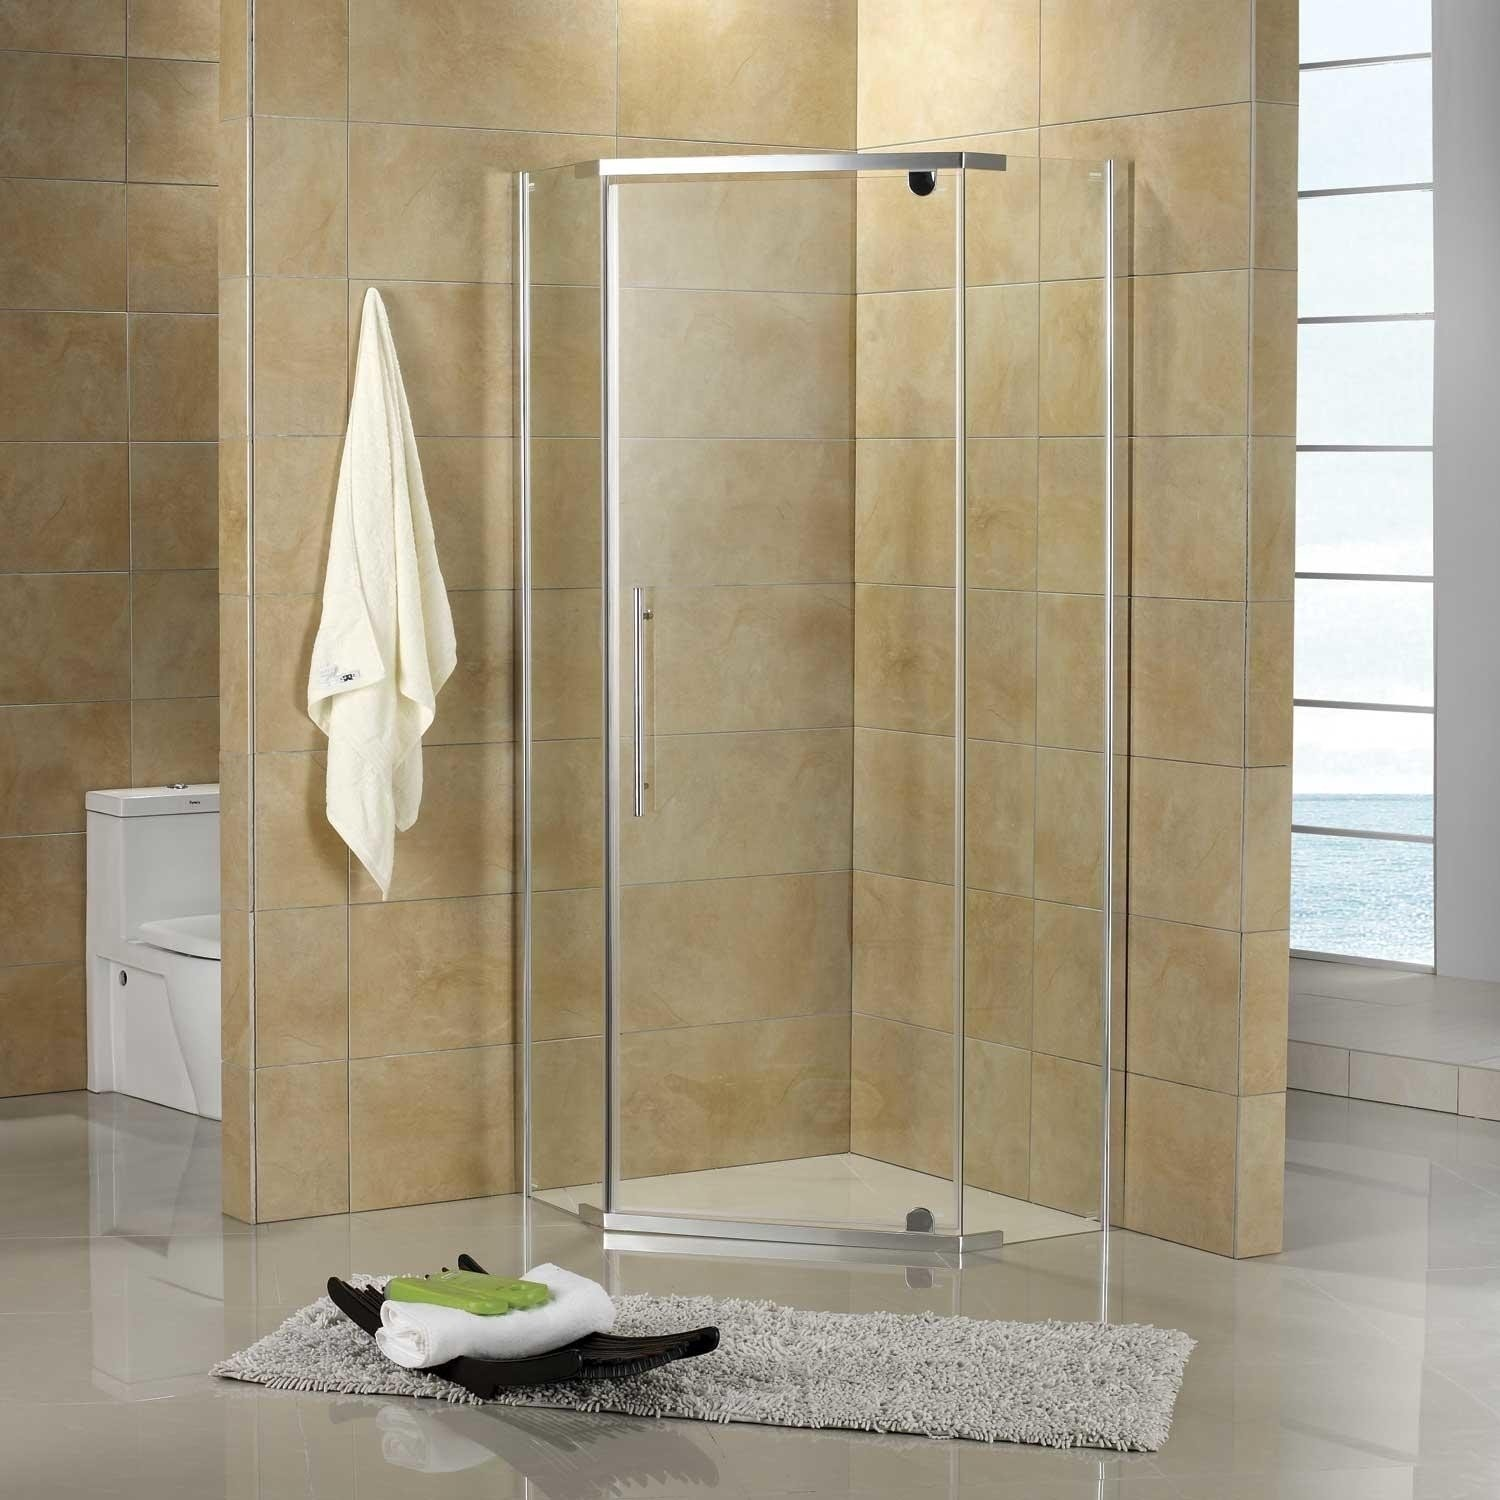 Corner Shower For Small Bathroom - Visual Hunt